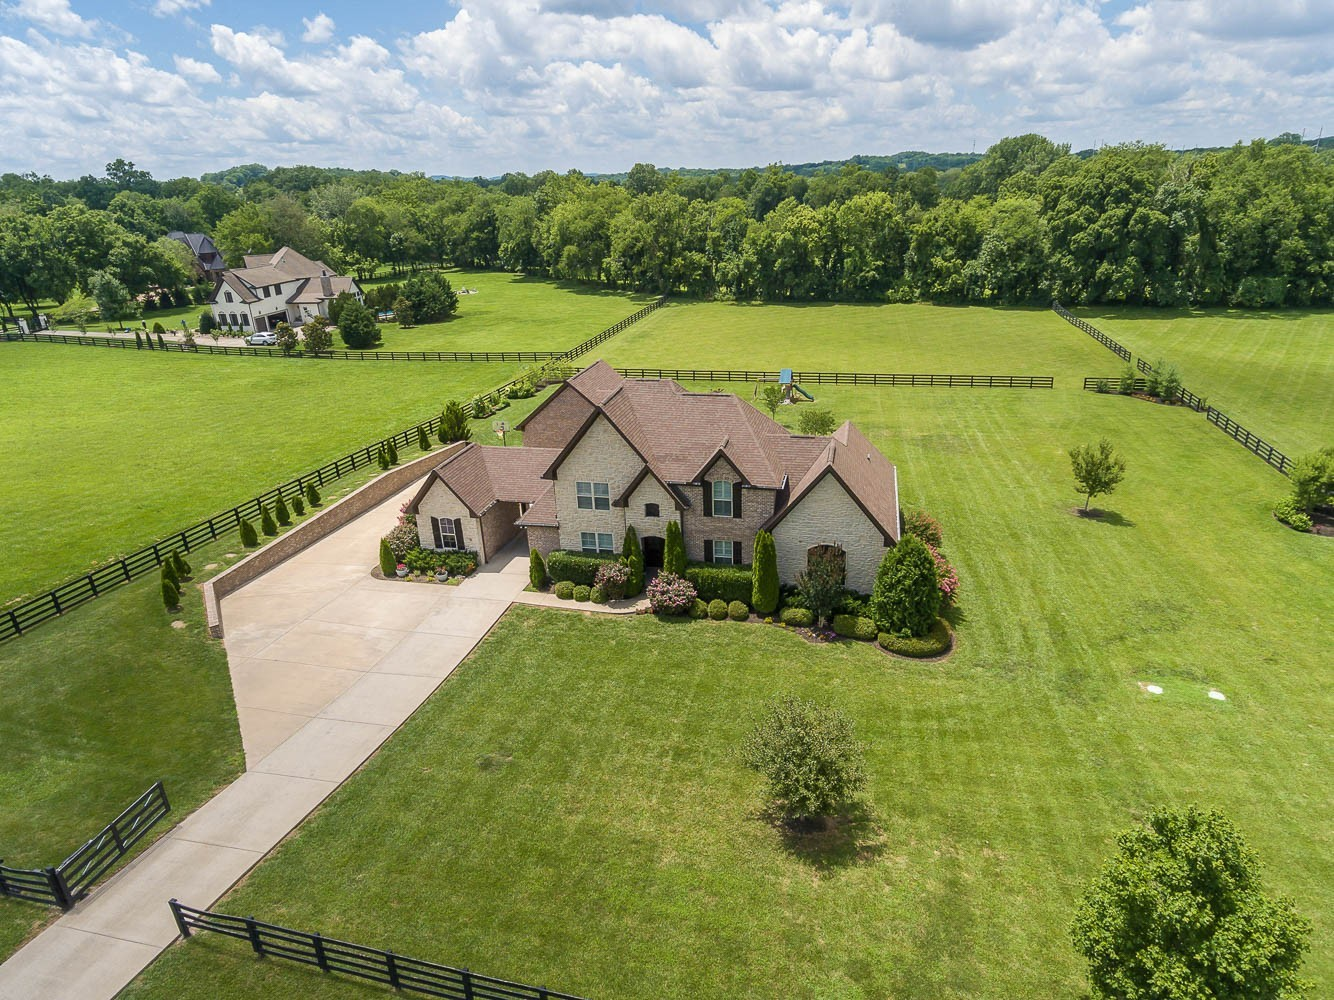 Located in beautiful equestrian community w/sweeping views of fenced pastures, open floor plan home features new luxury kitchen w/Bosch, quartz & wine fridge that opens to cozy great room w/stone fireplace & french doors to patio. Stunning master wing  has private office (or 5th bedroom) & bedroom suite featuring GORGEOUS spa bath w/clawfoot tub! Room for everyonel w/2 add'l 1st flr guest beds PLUS 2 more bedrooms up w/bonus rm & game loft!  Stunning 5.6 acres perfect for pool, barn & horses!